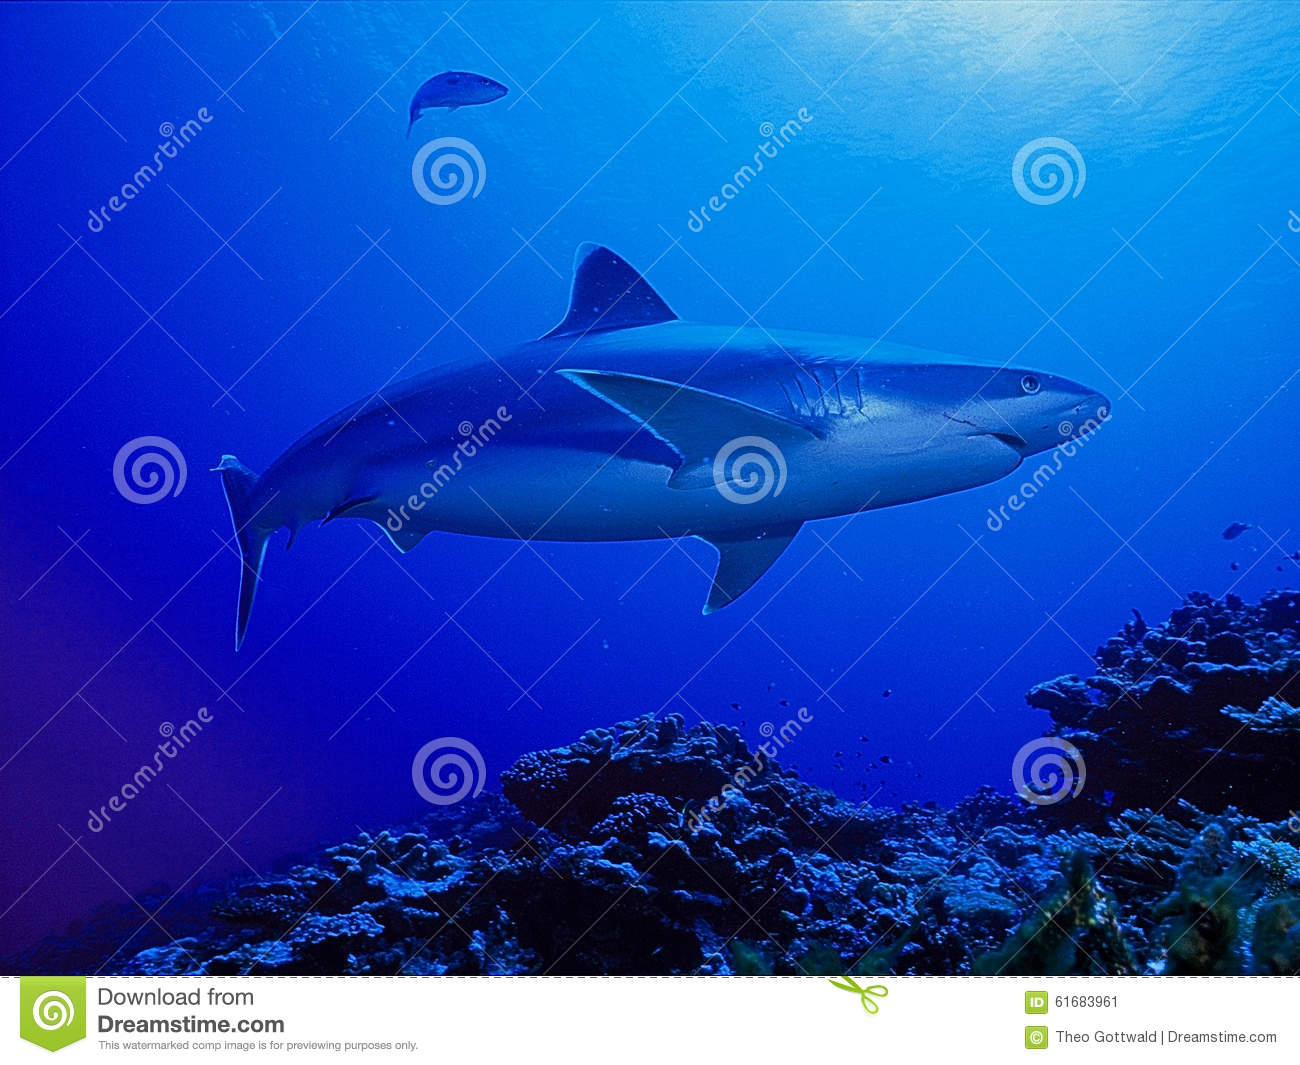 Shark Swimming In Blue Waters Stock Photo - Image: 61683961